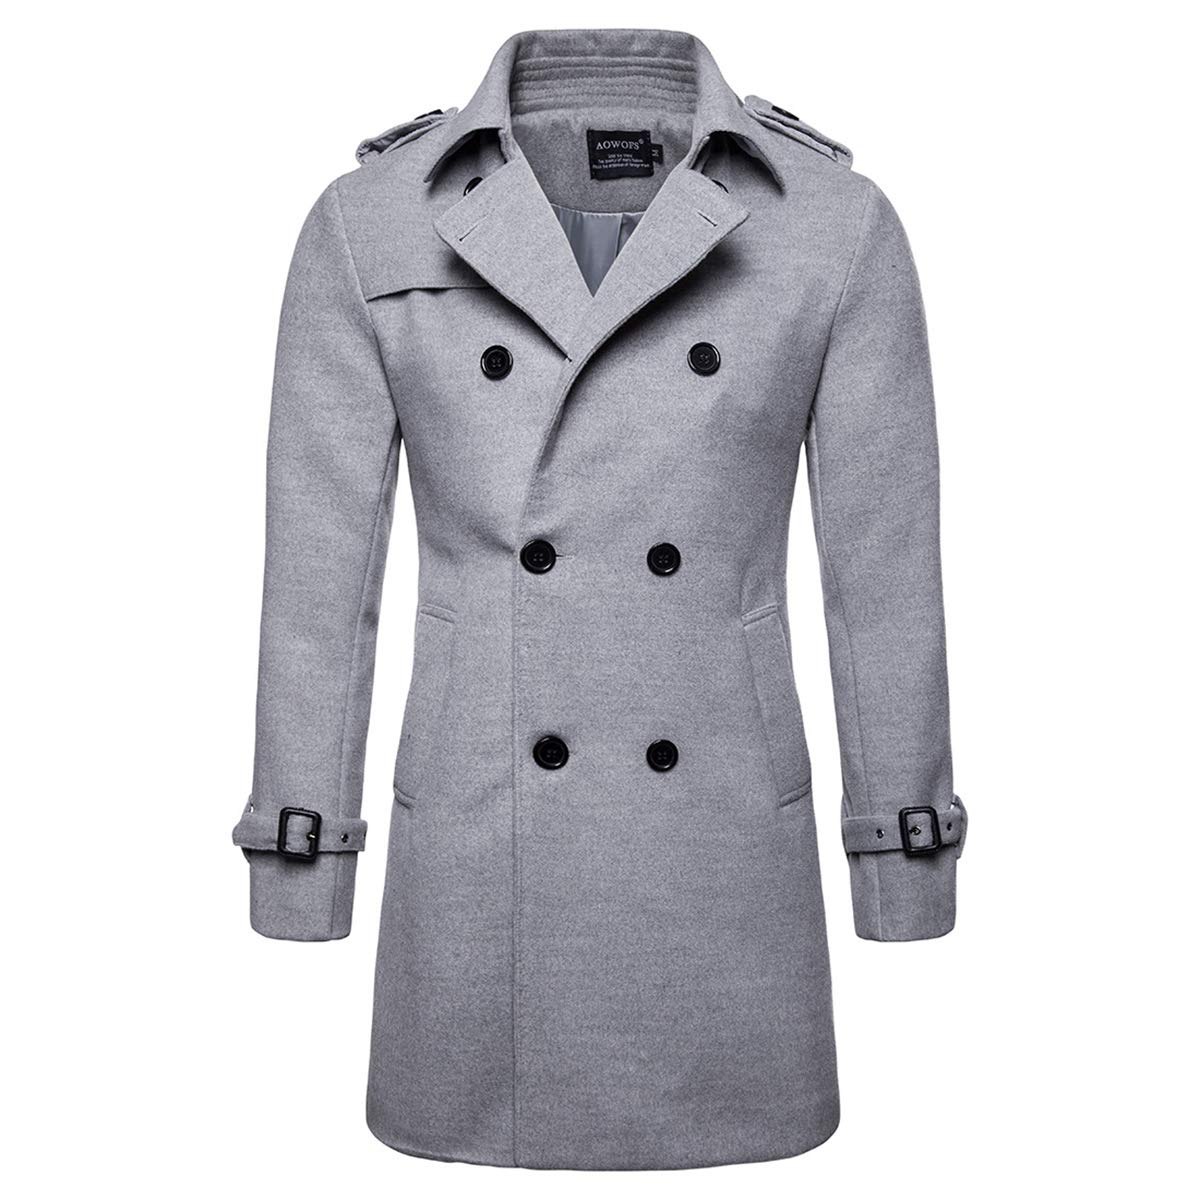 AOWOFS Men's Trench Coat Woolen Winter Long Double Breasted Overcoat Slim Fit Warm Pea Coat Grey by AOWOFS